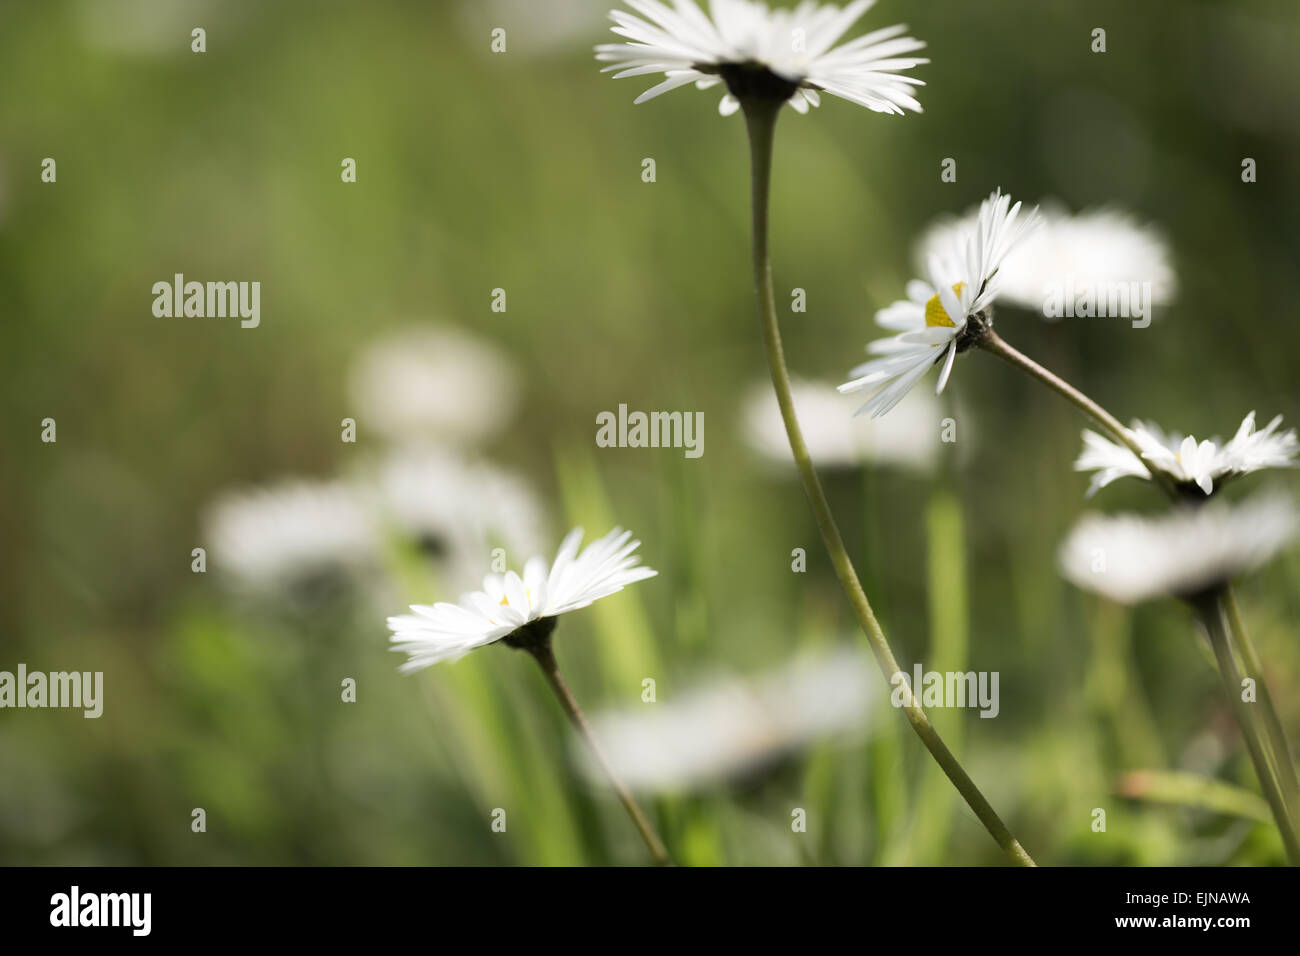 Flowers dancing in the wind stock photos flowers dancing in the daisy flowers dancing in the wind against a blurred green backdrop with other blurred daisies in izmirmasajfo